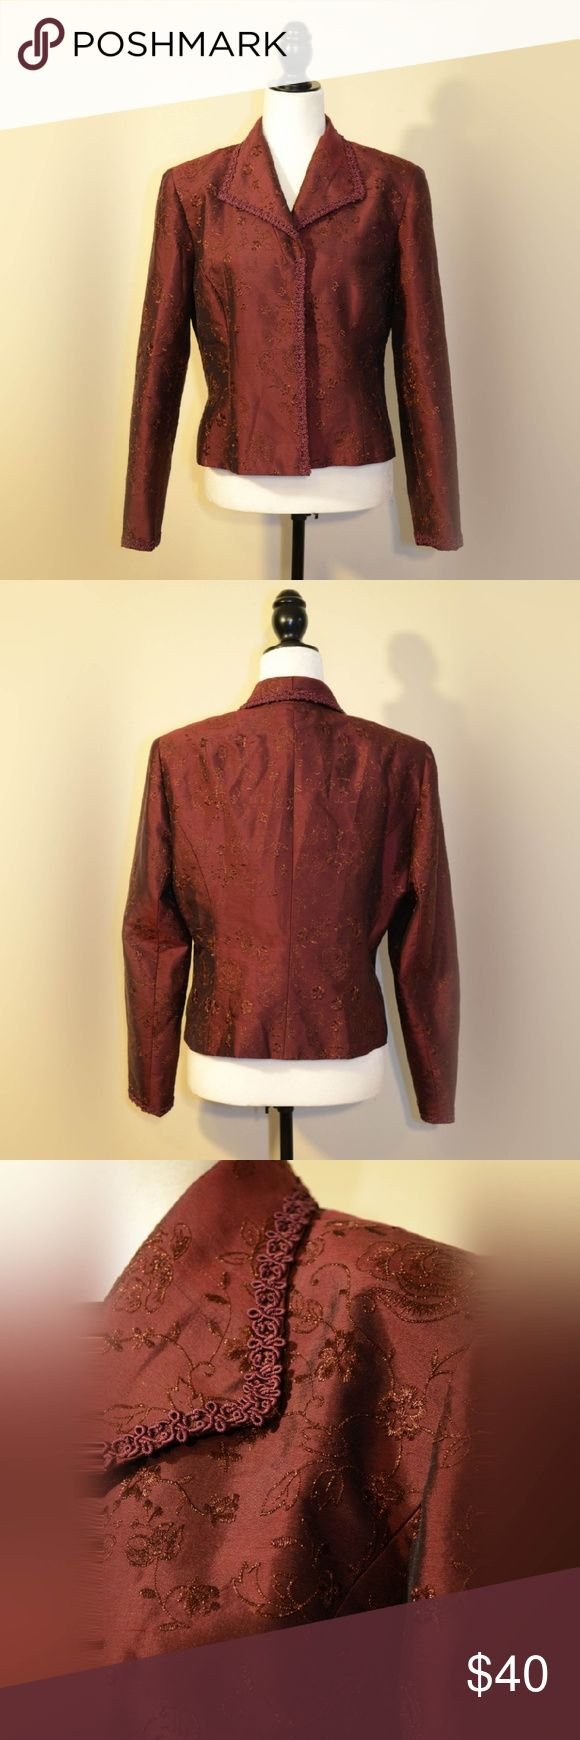 Kay Unger Burgundy Blazer Absolutely gorgeous Kay Unger blazer. Embroidered with a subtle floral pattern. Inside lining is 100% silk. Kay Unger Jackets & Coats Blazers